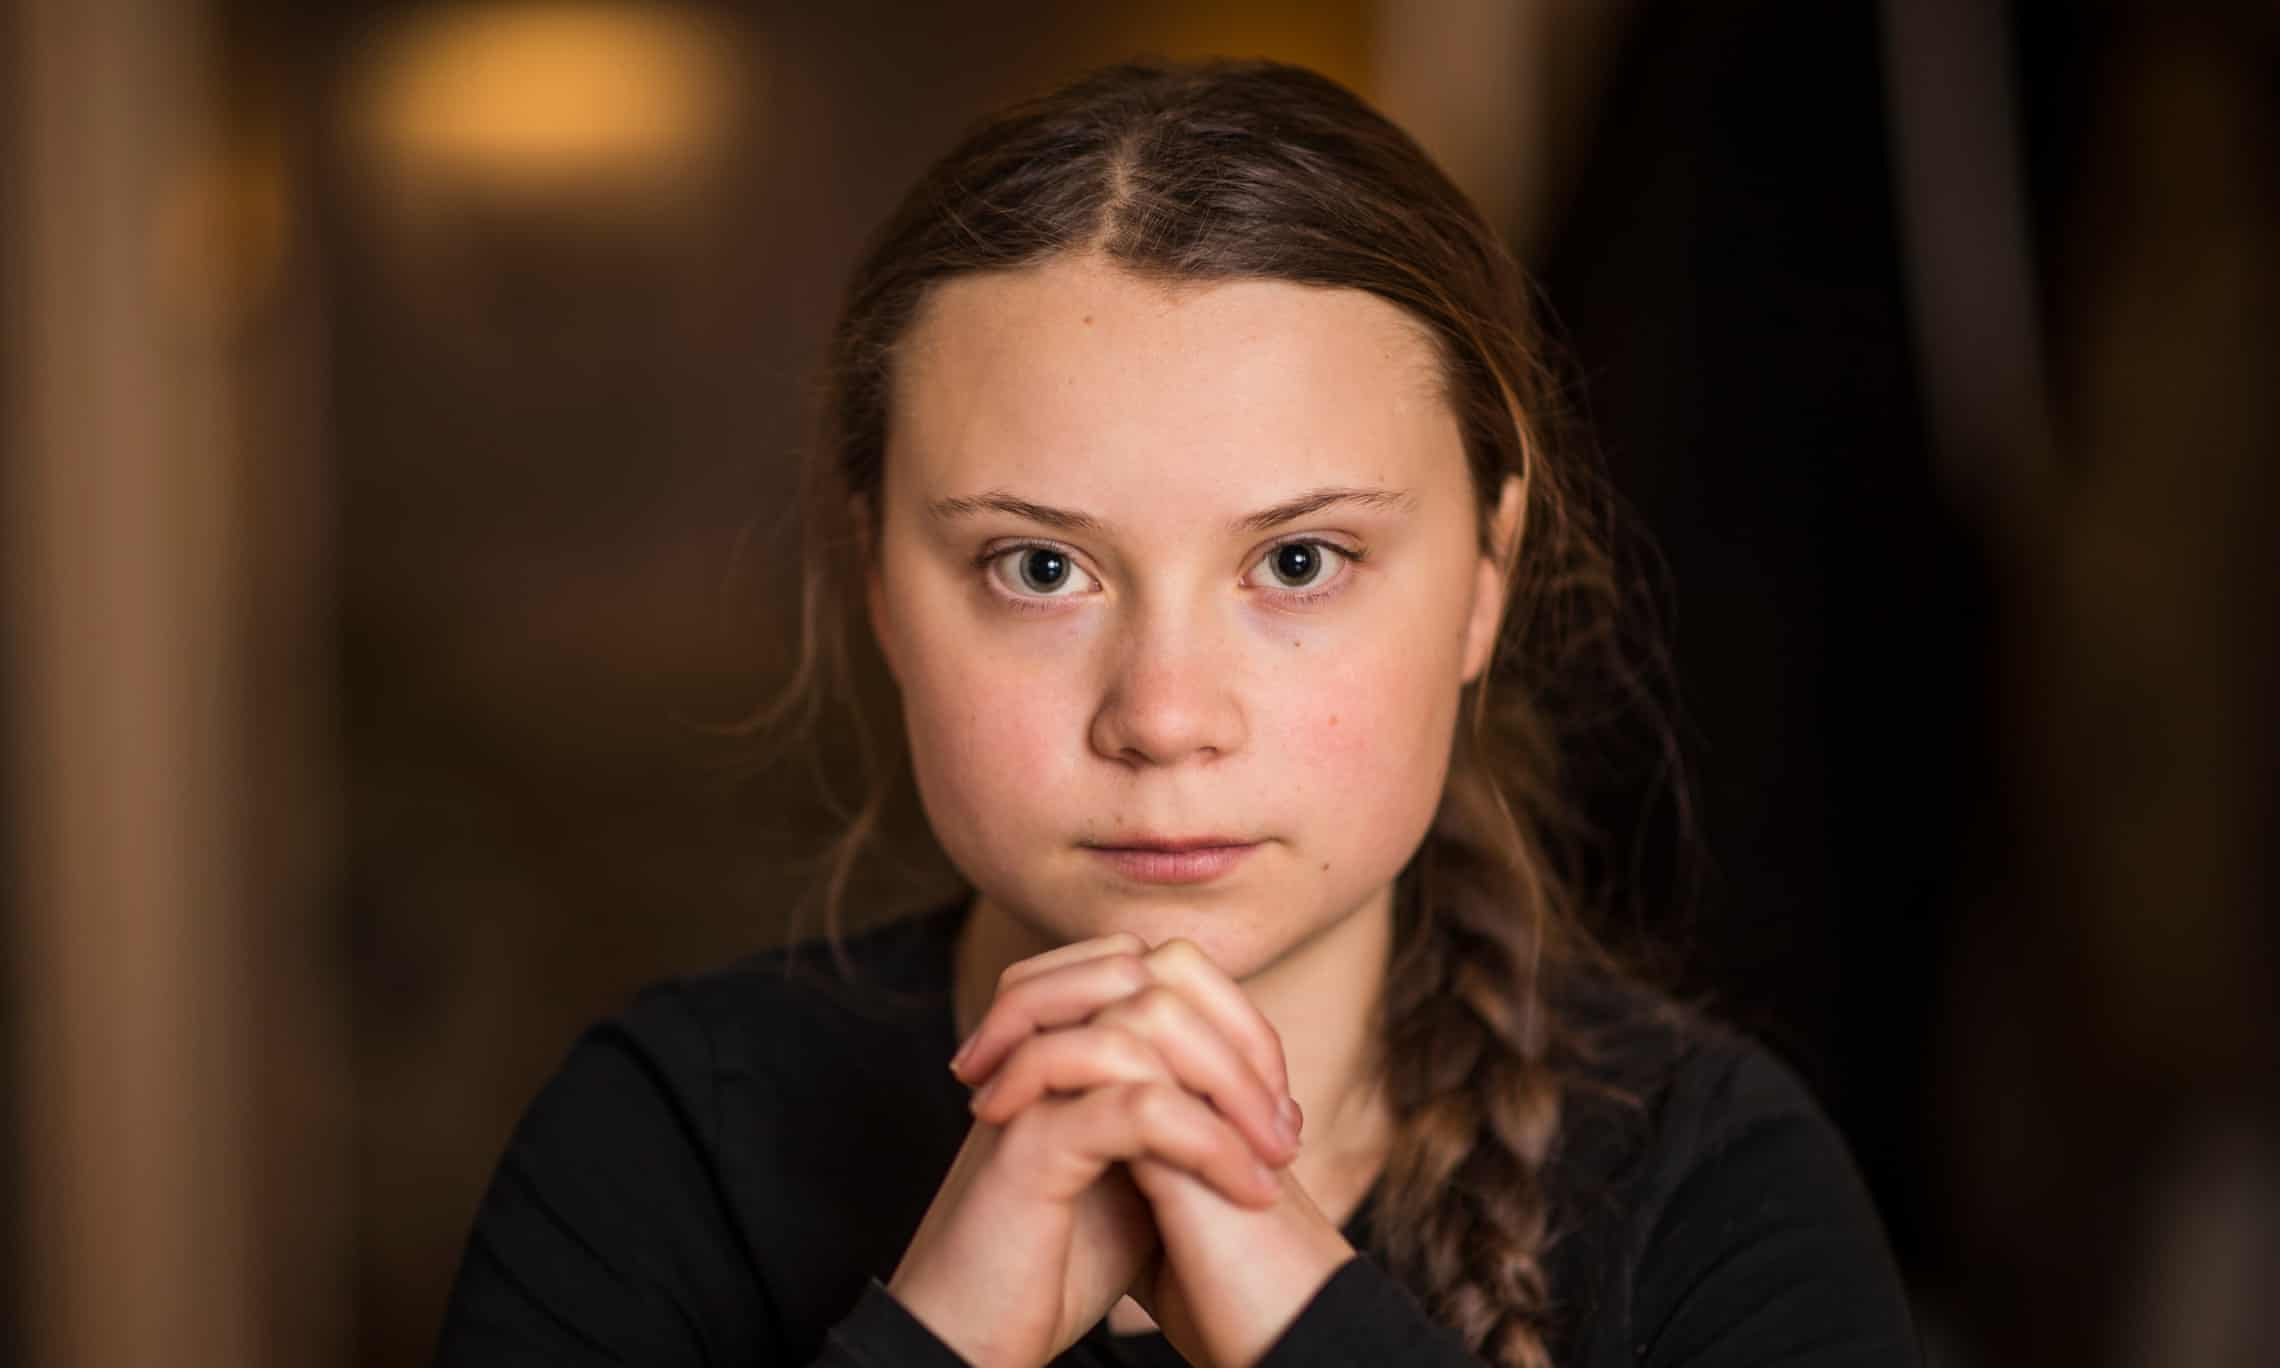 Greta Thunberg activist for climate change. a young voice for safeguarding nature in a world that is failing us